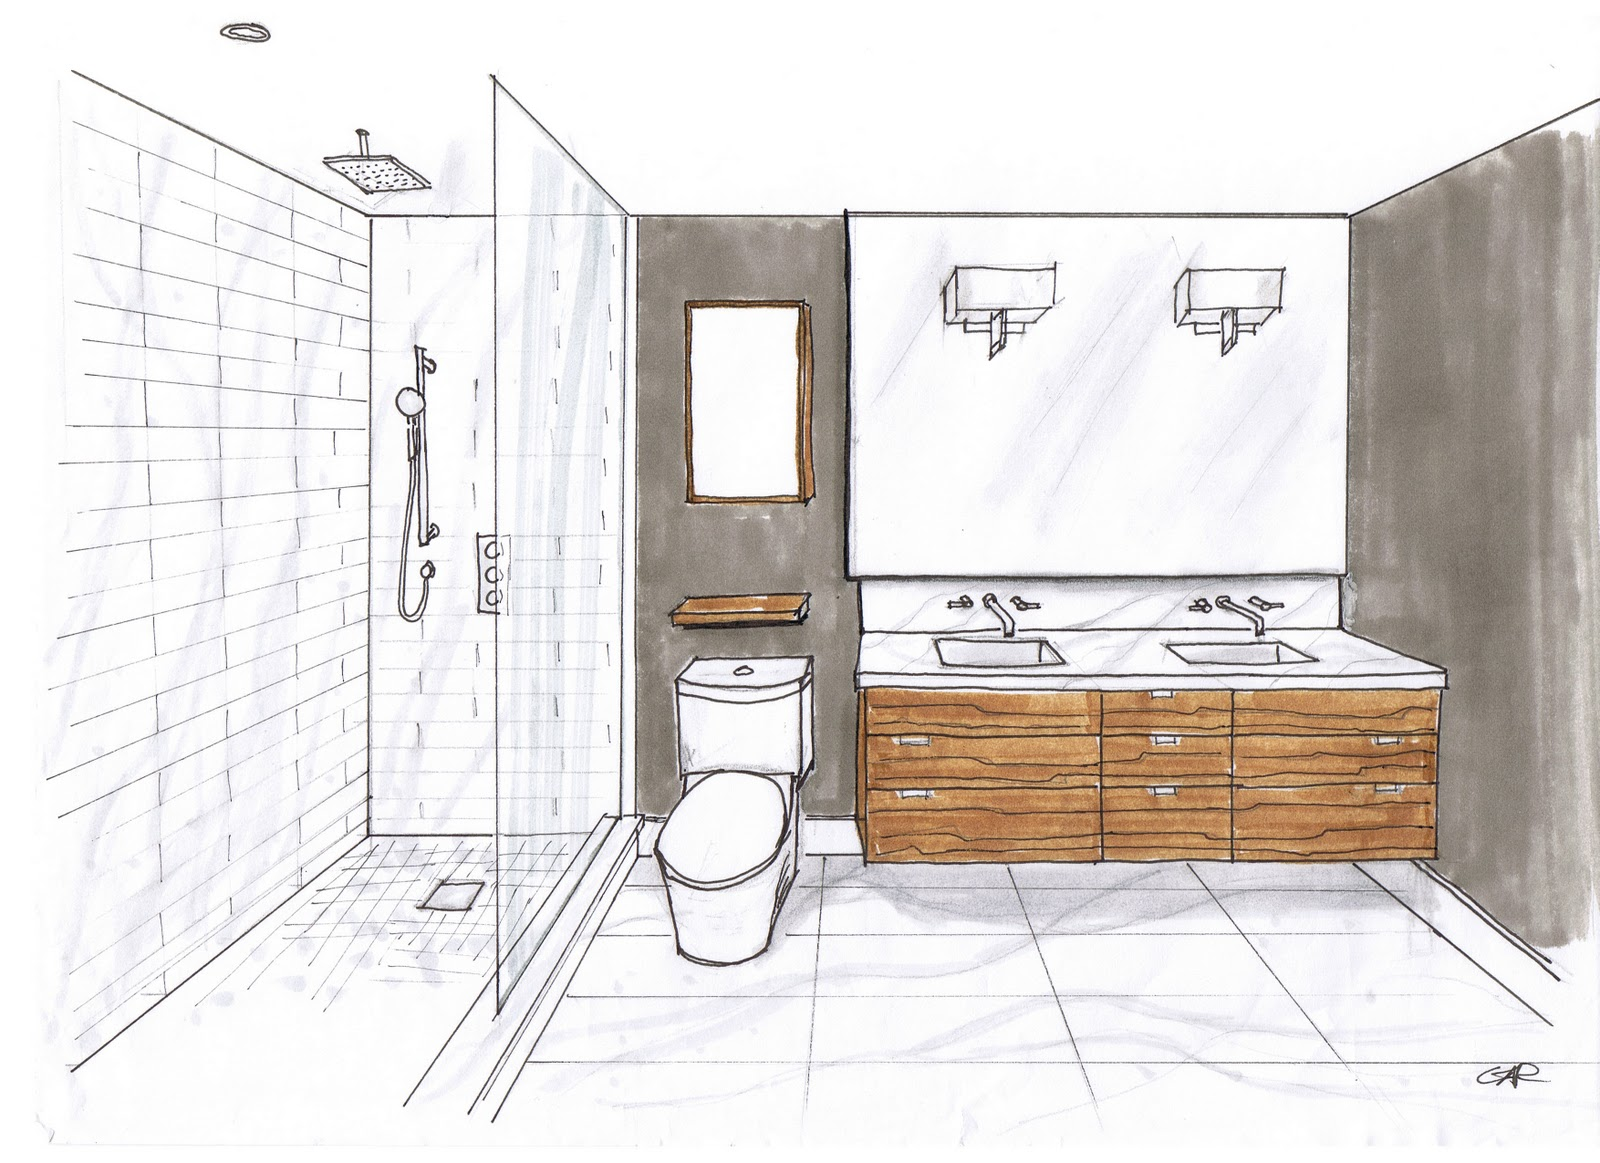 Creed 70 39 s bungalow bathroom designs for Bathroom 8 x 8 layouts